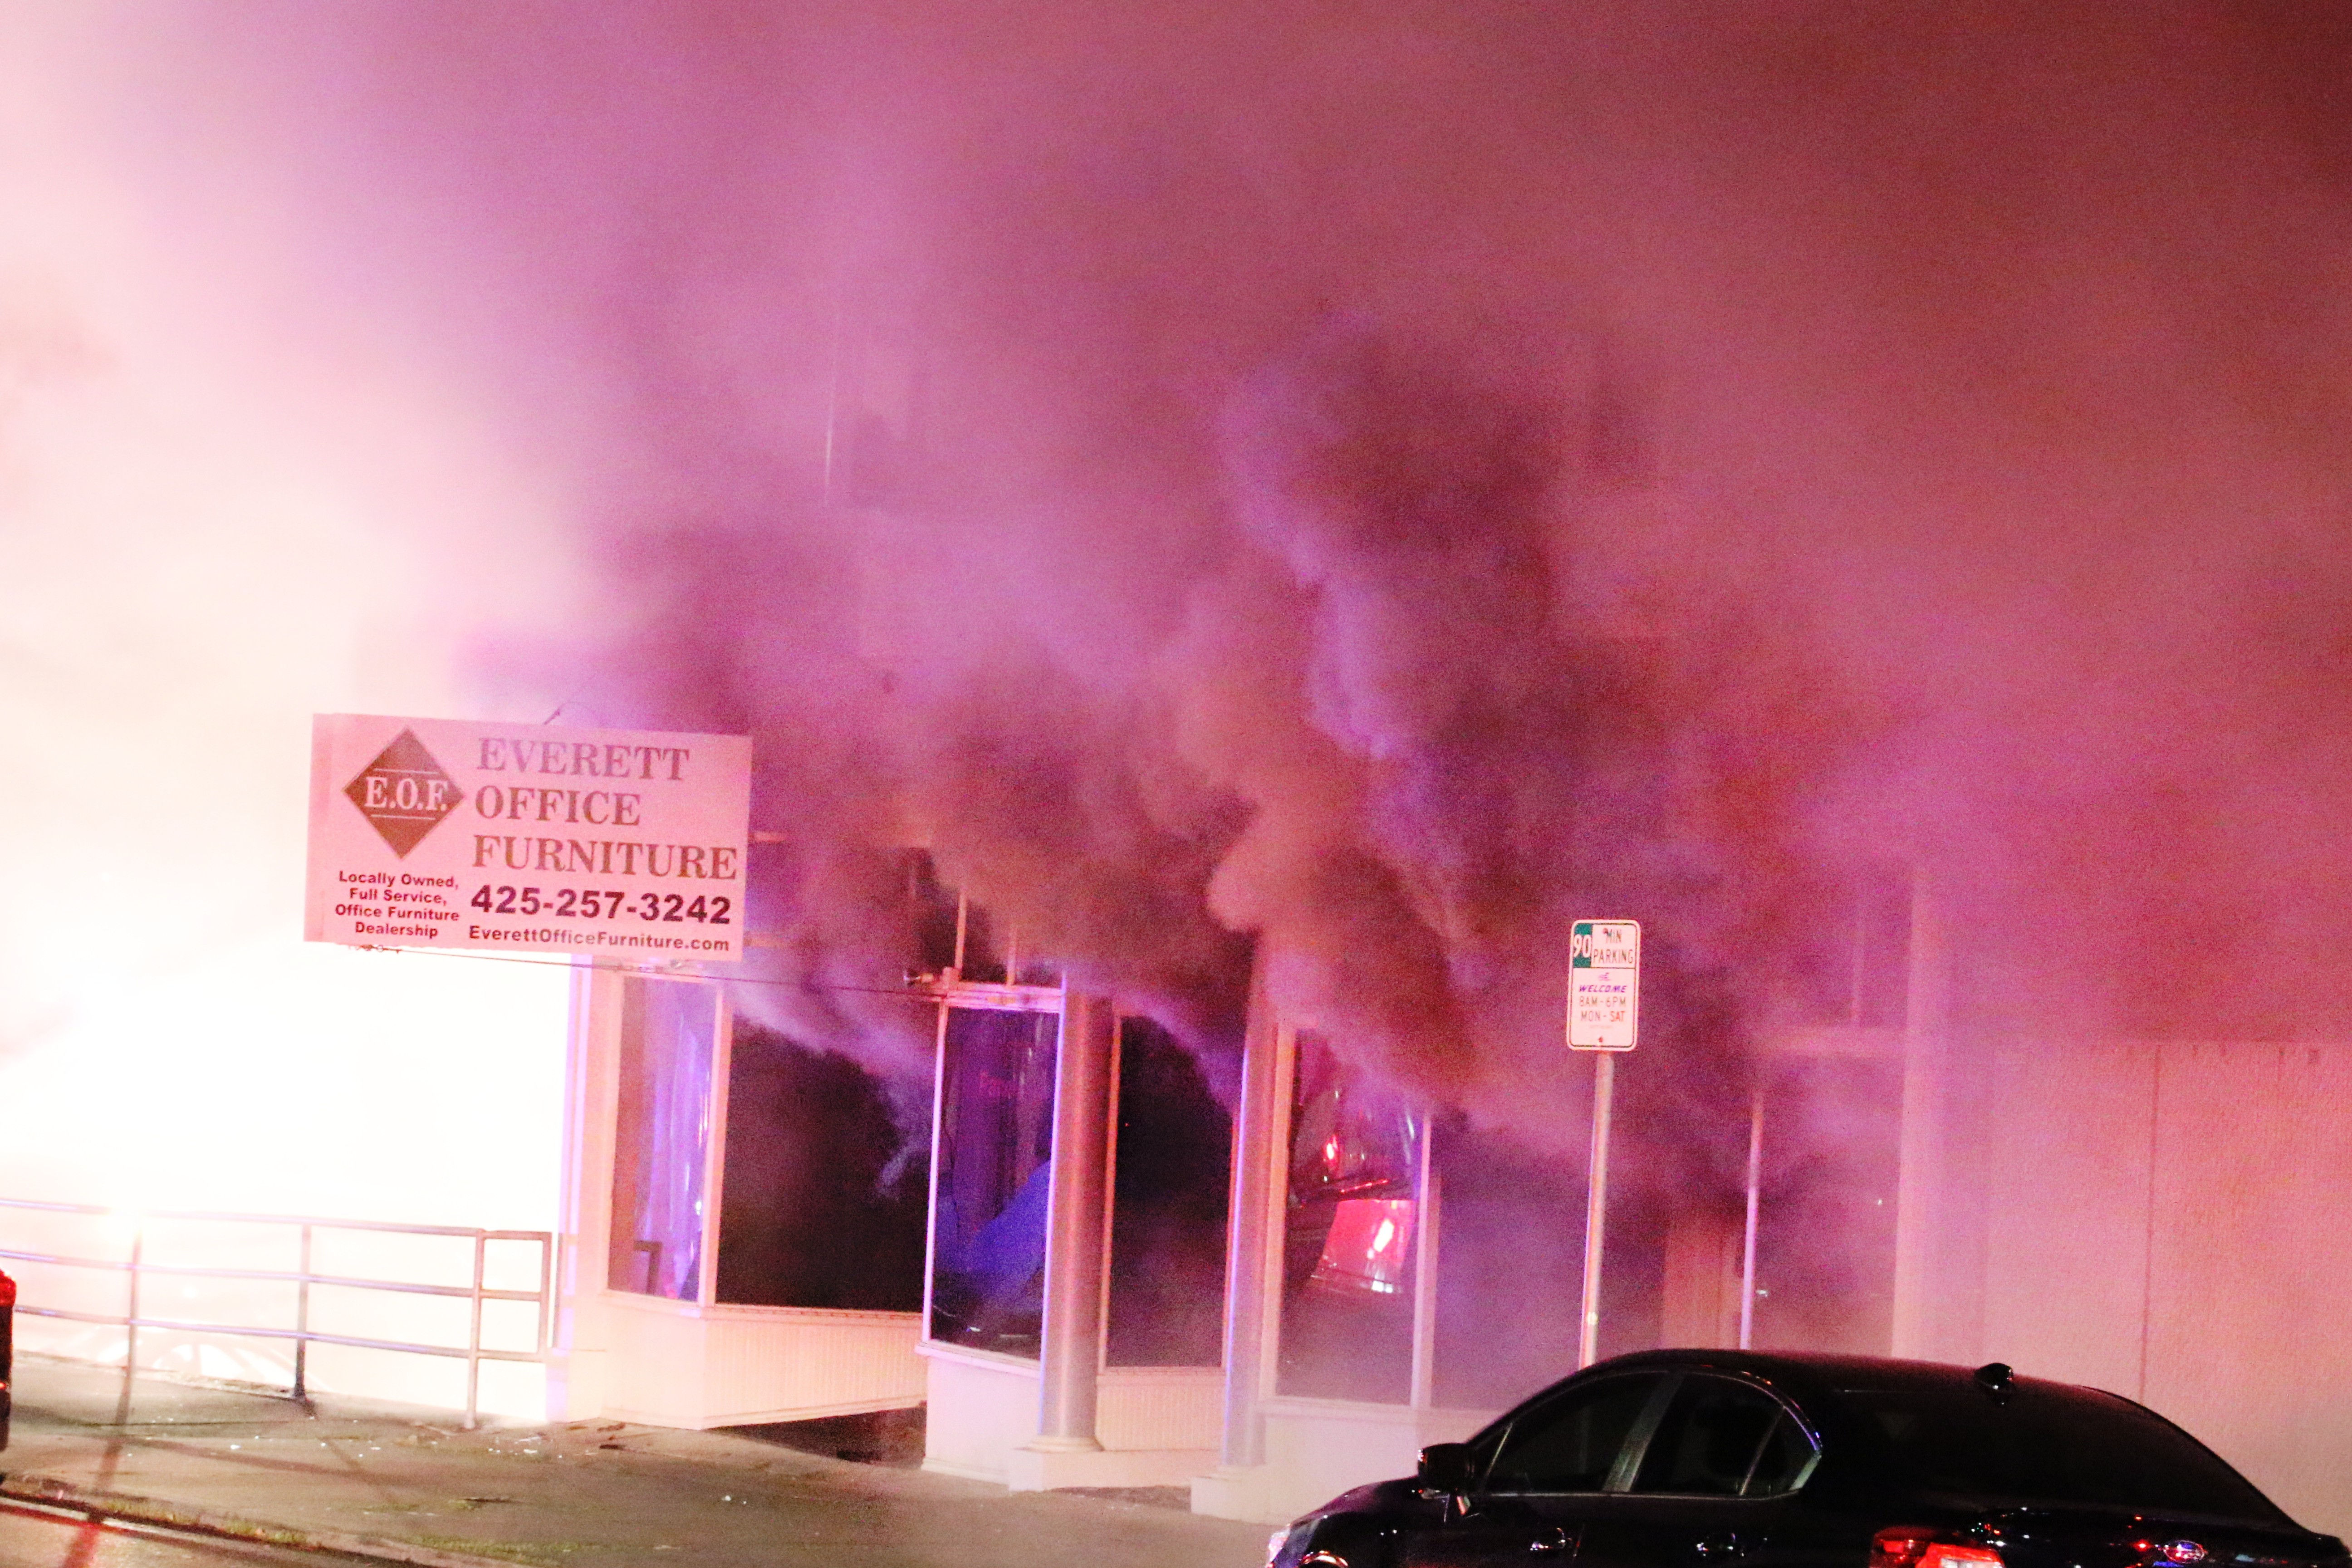 Delightful One Of The Oldest Buildings In Everett Was Gutted By A 3 Alarm Fire Monday  Night.